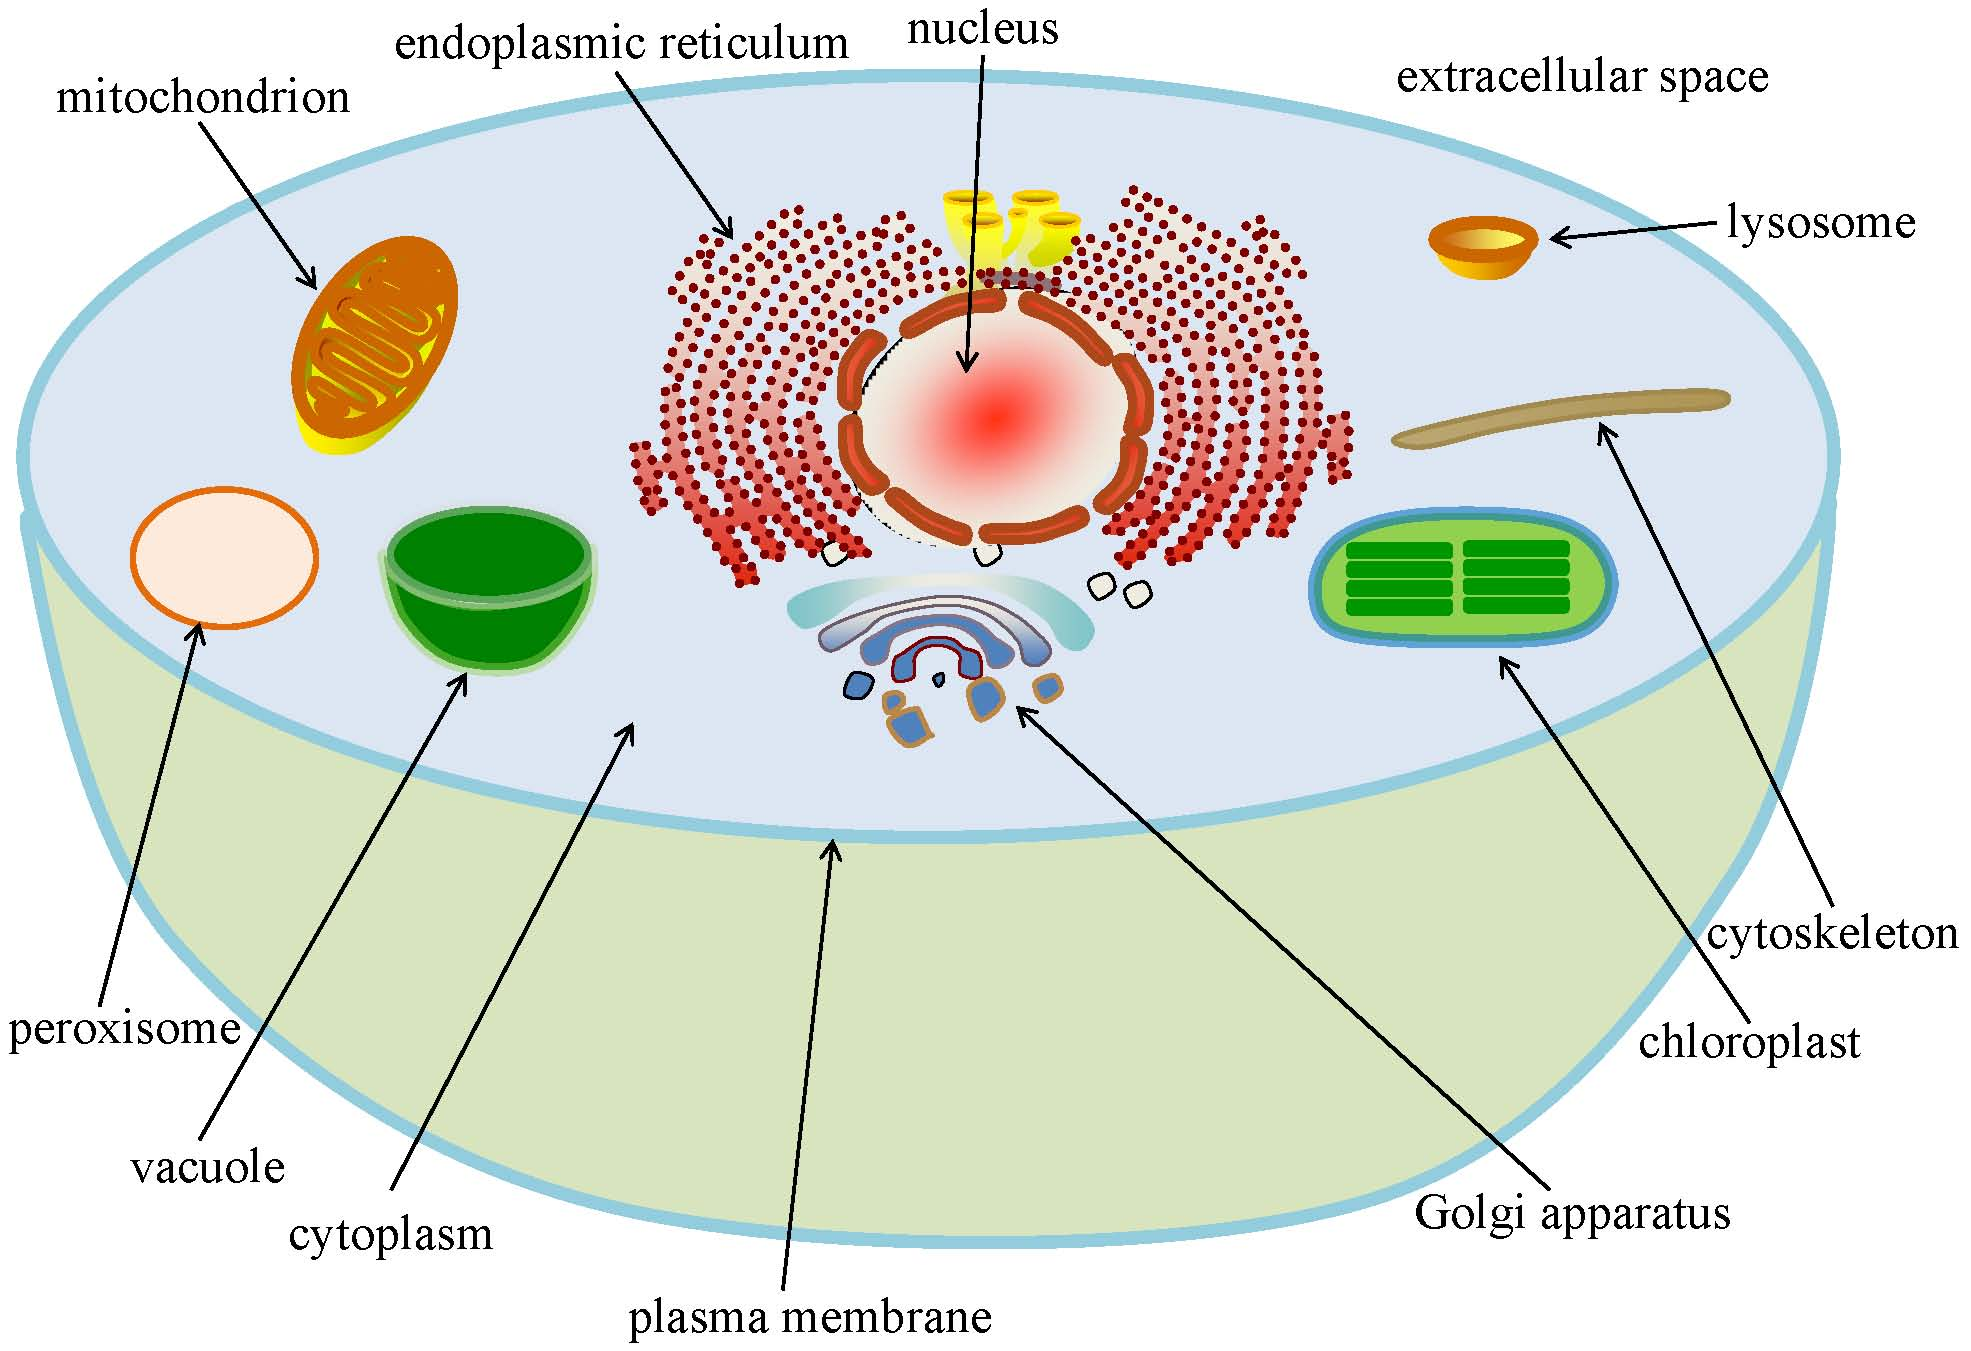 Basic cellular functions and biology